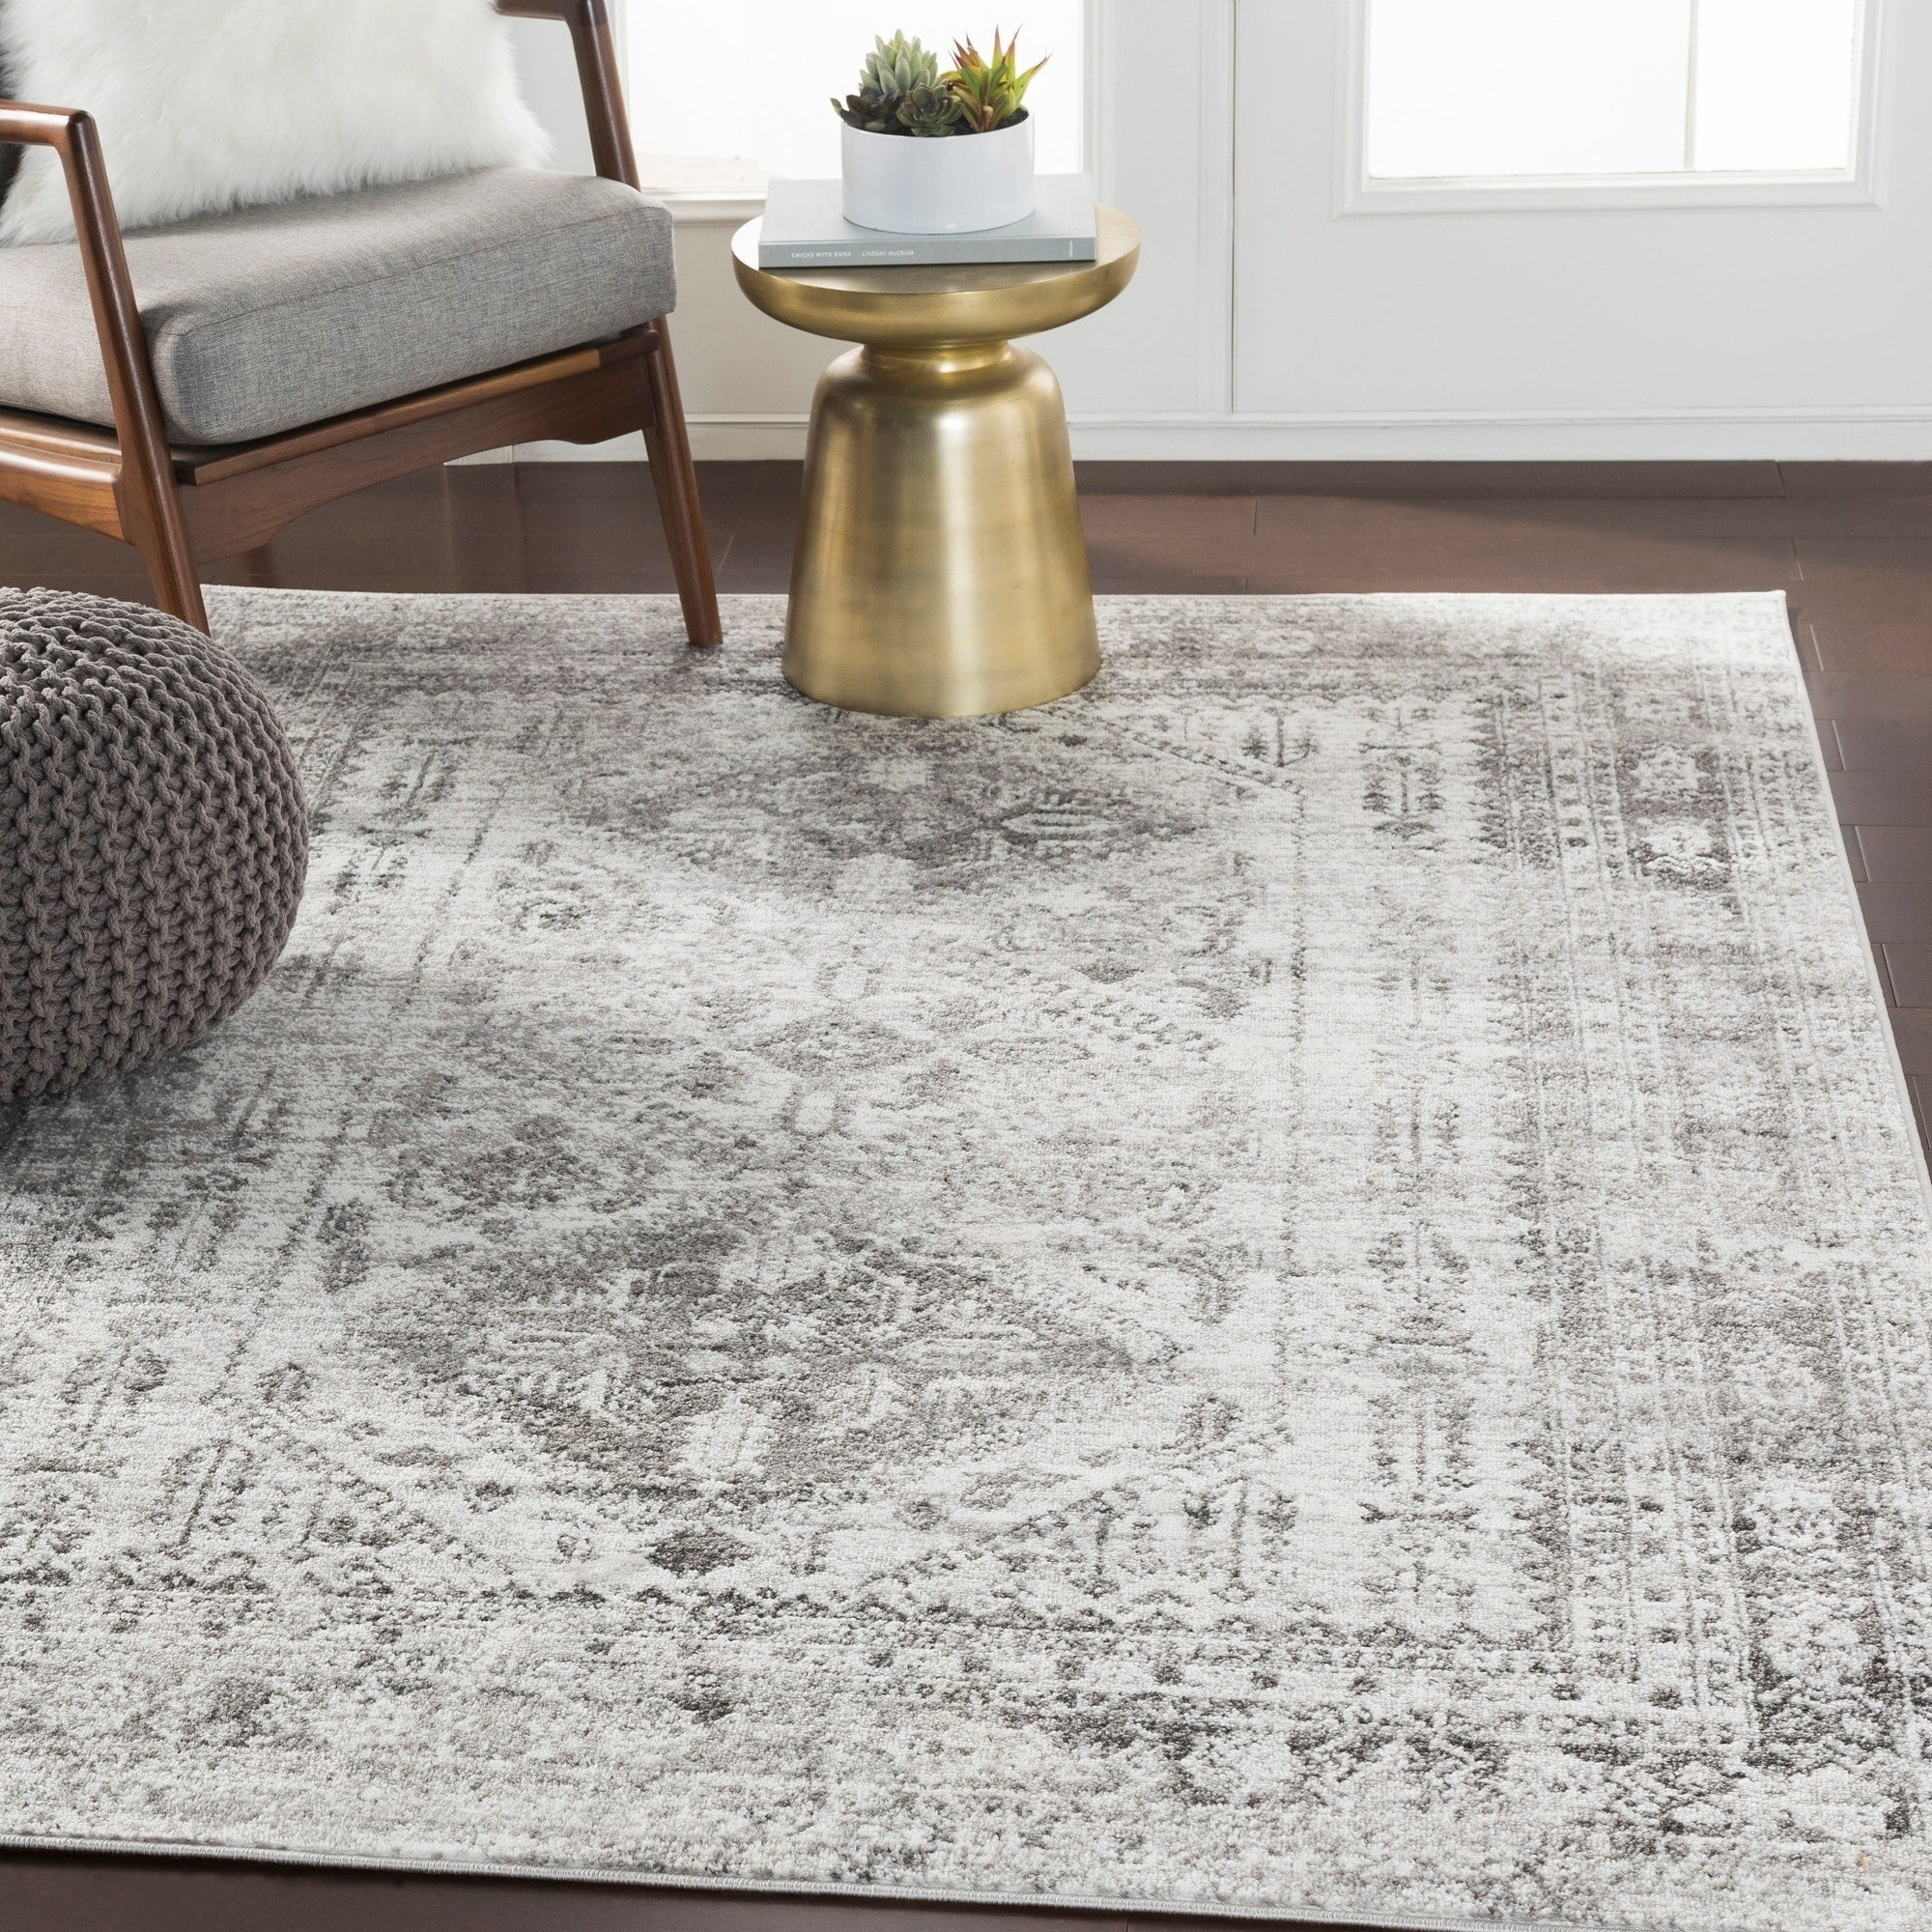 Oriental Charcoal Light Gray White Area Rug Modern Rugs And Decor